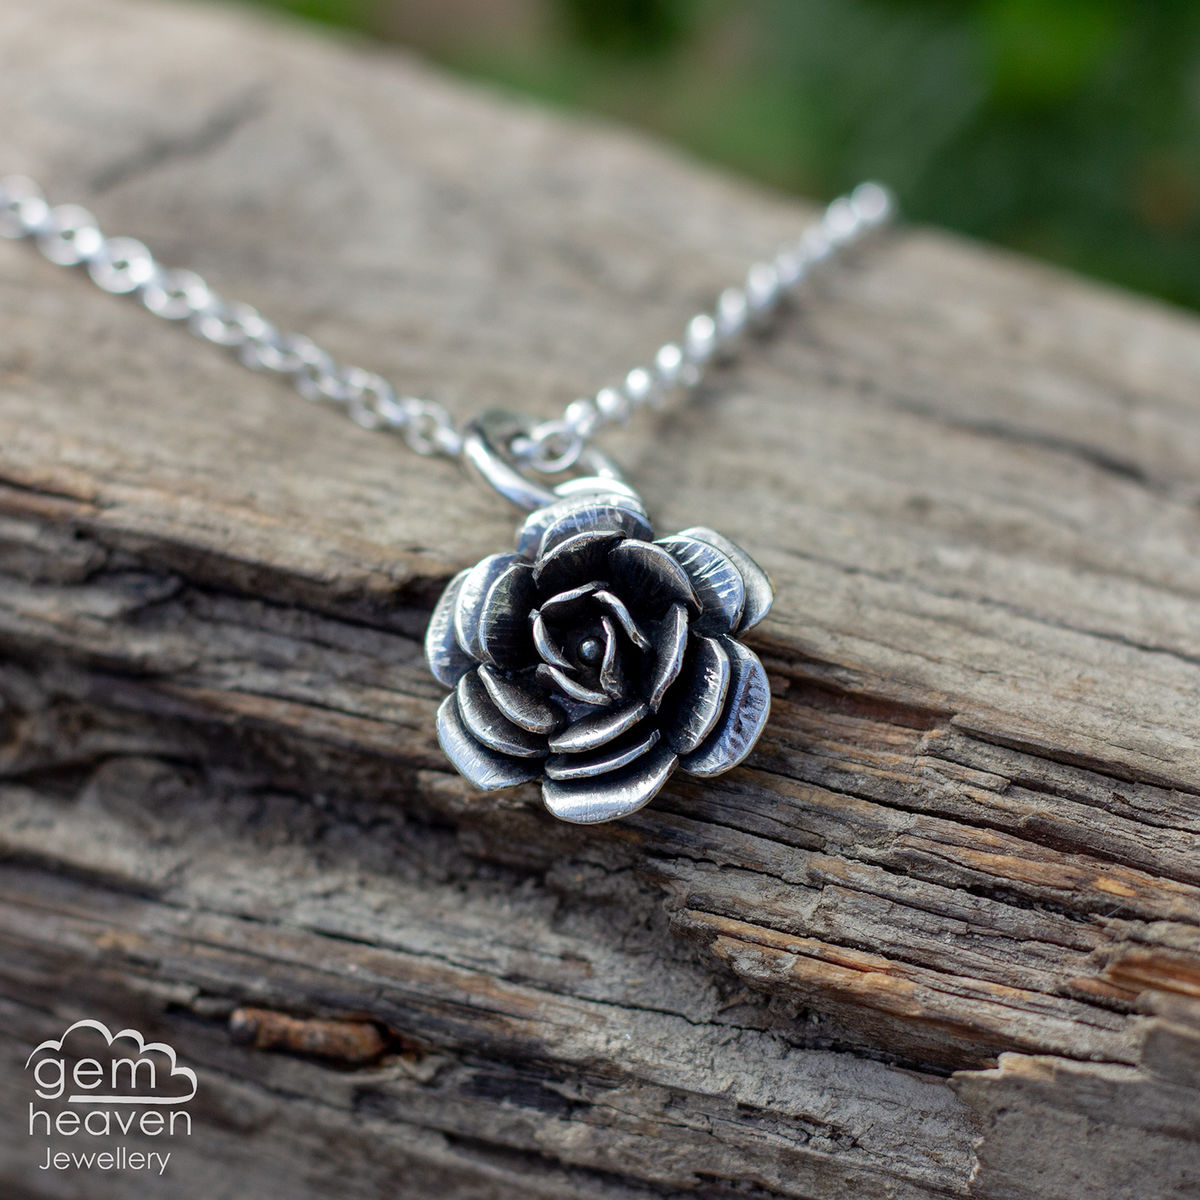 Storyteller Rose charm  - product image